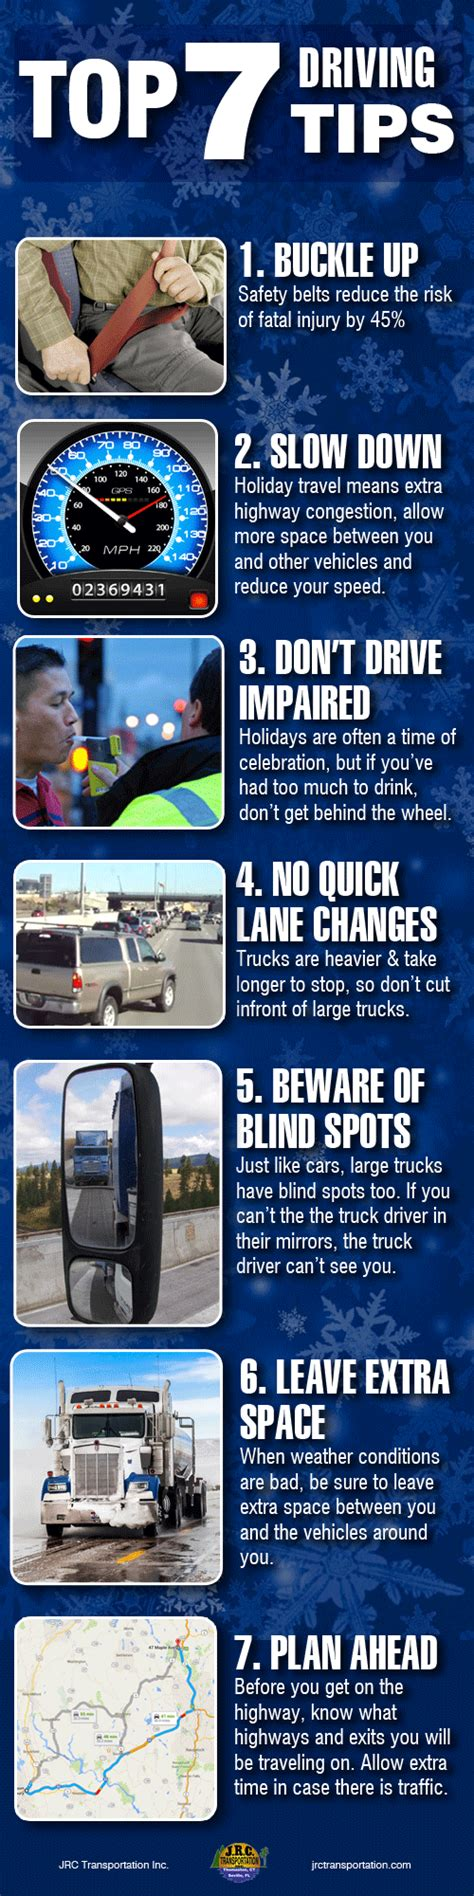 7 Tips For Being A Safe Driver On The Road by Top 7 Driving Tips For 2015 Jrc Transportation